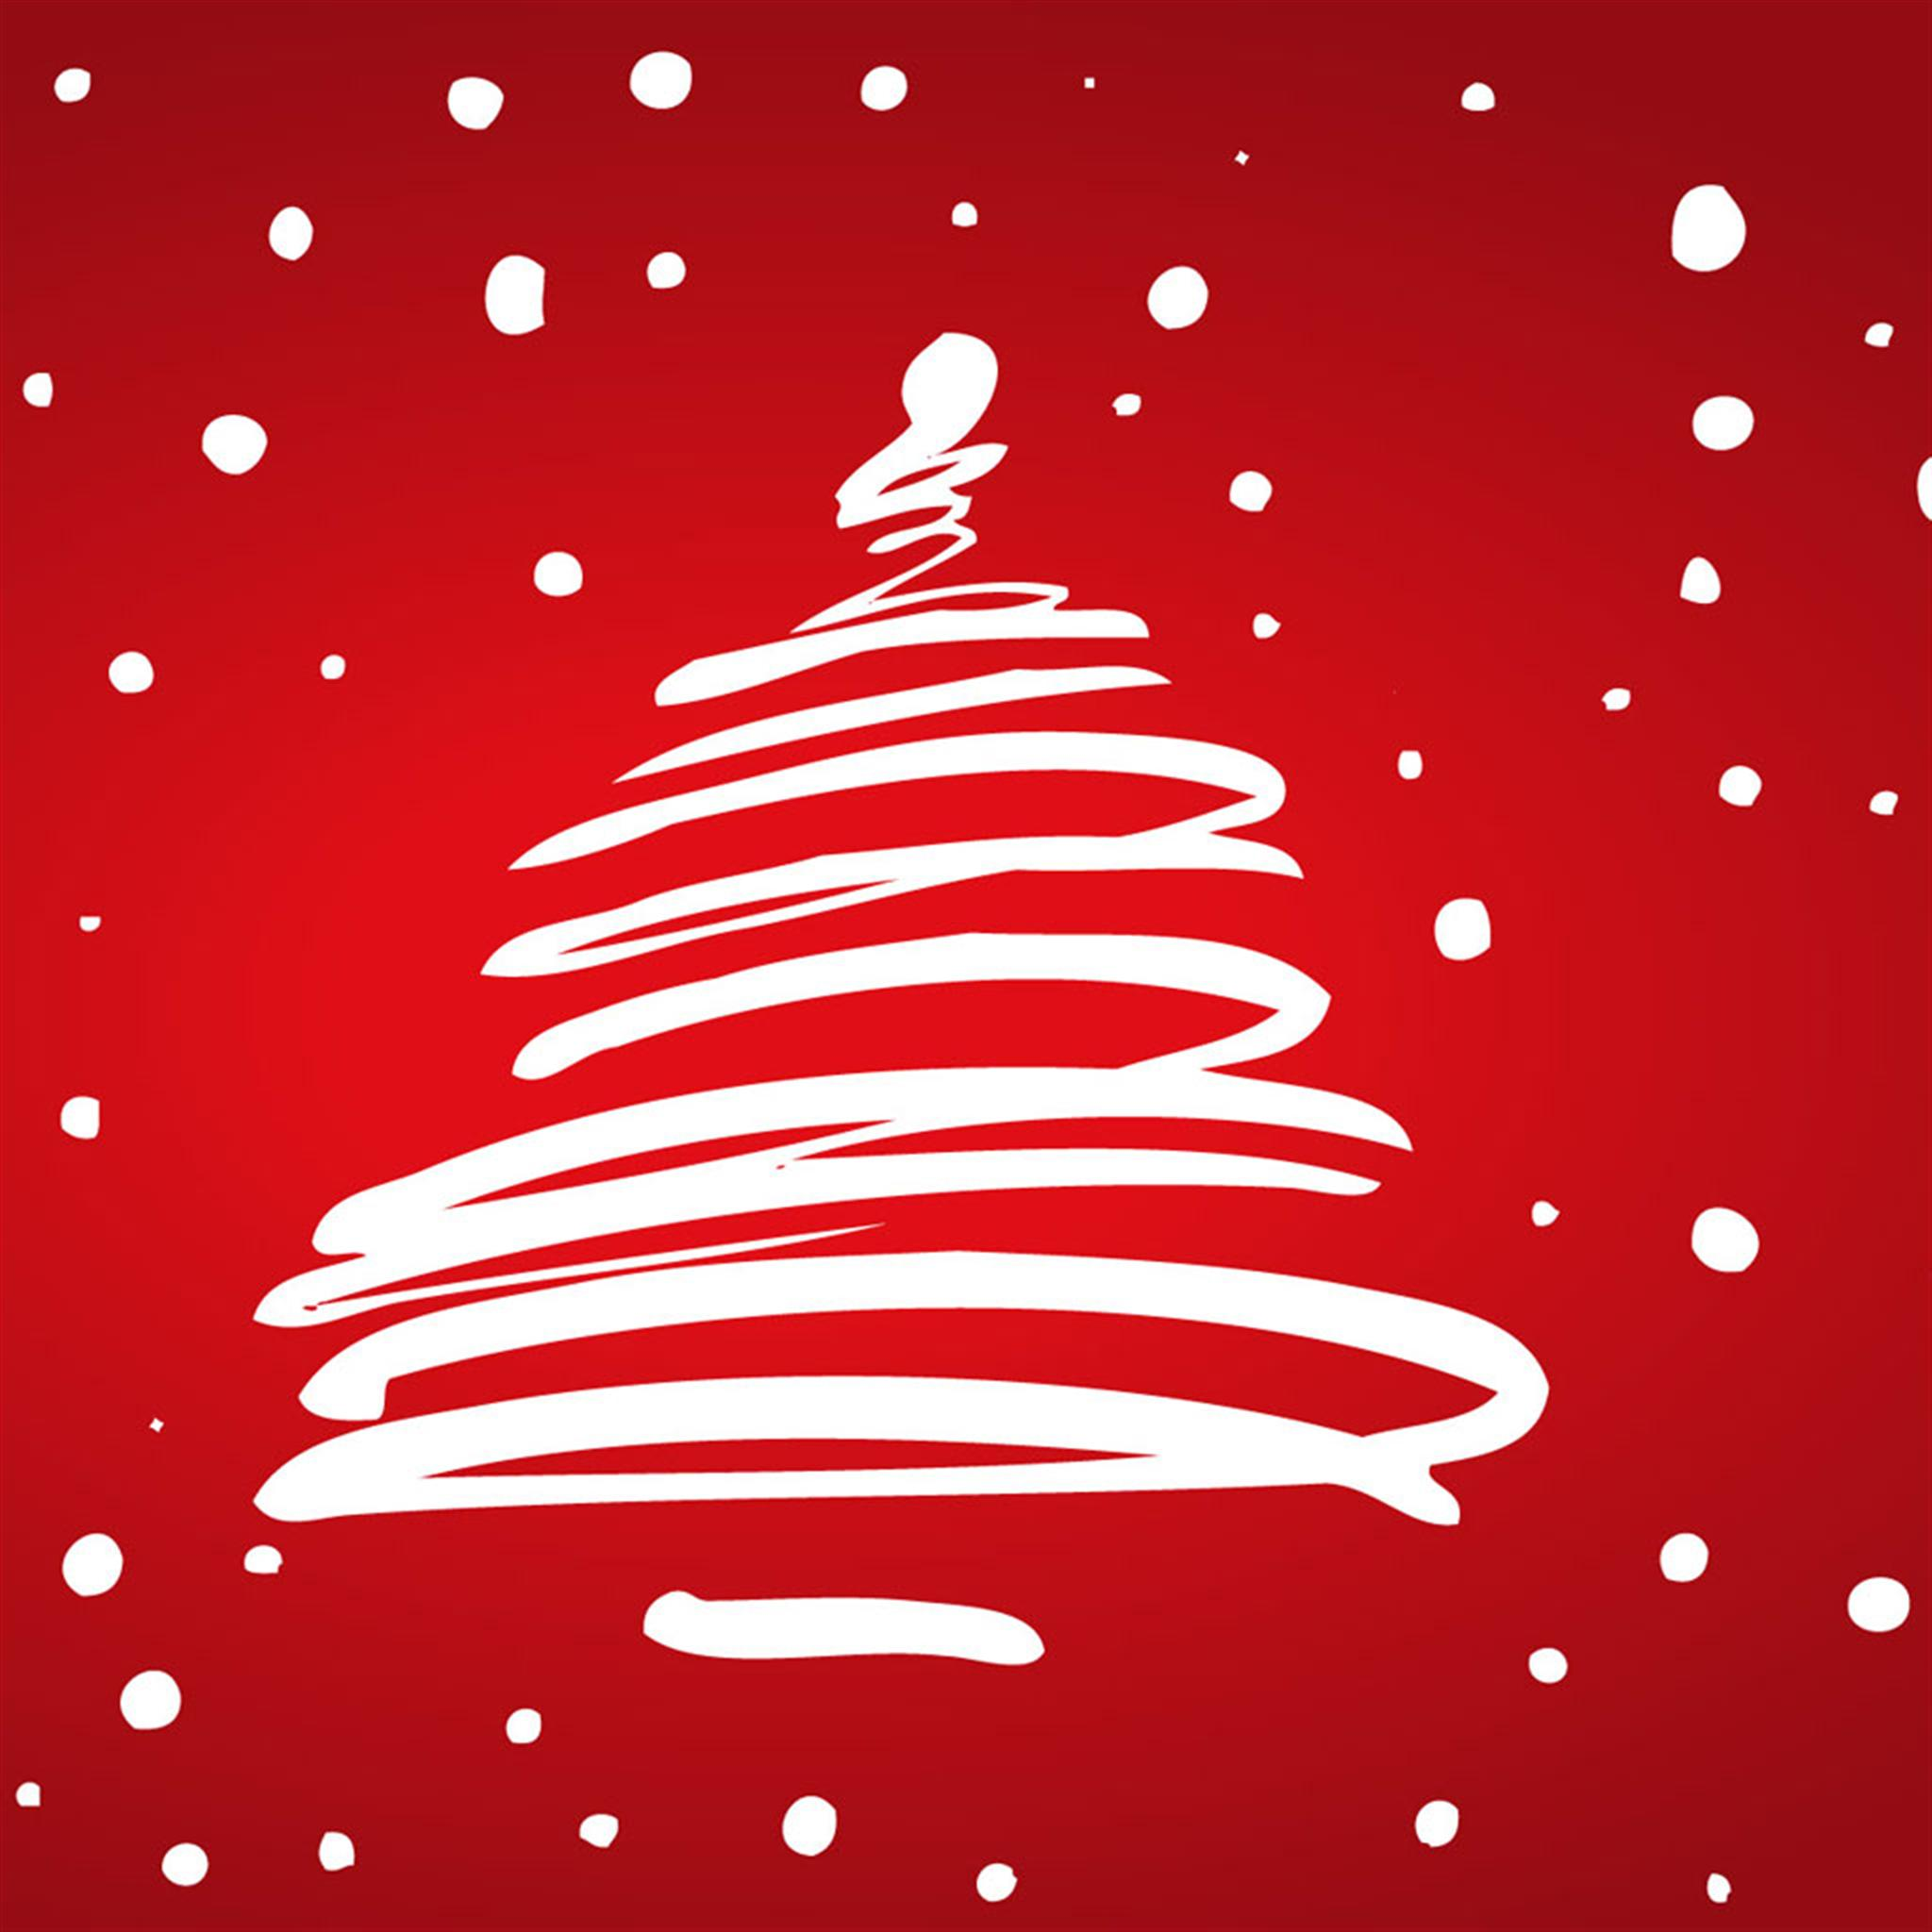 iPad Christmas Wallpaper HD - WallpaperSafari